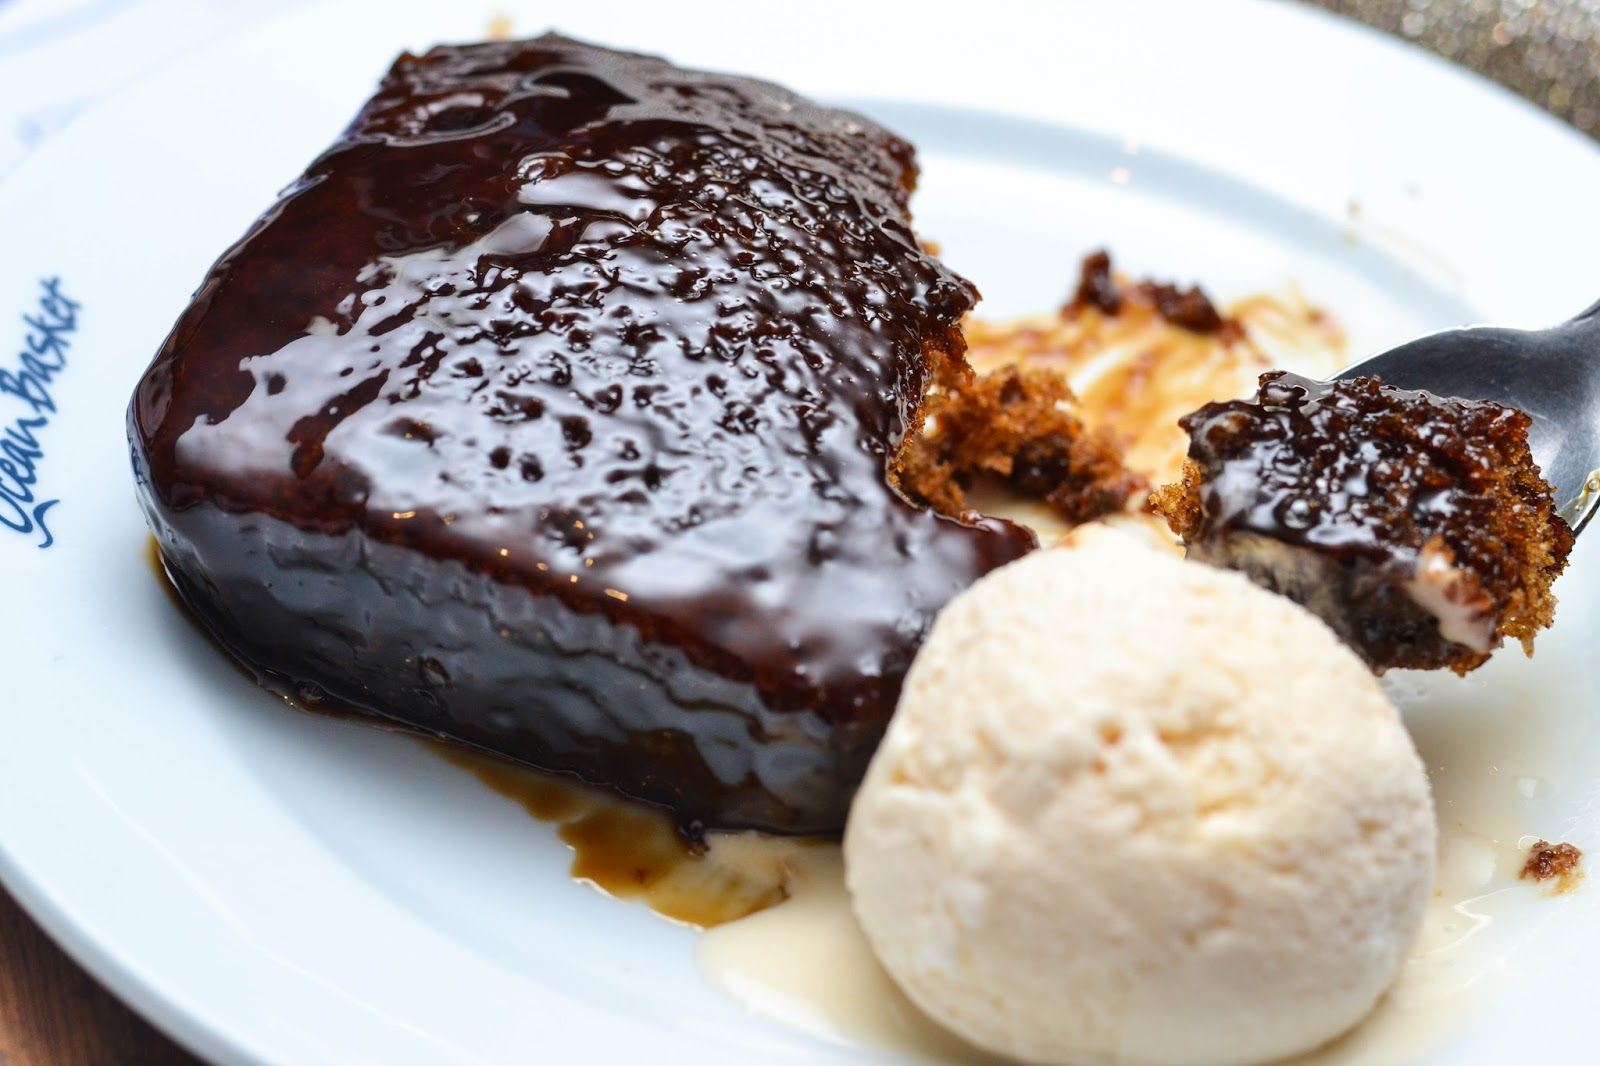 Toffee Pudding and Ice-cream